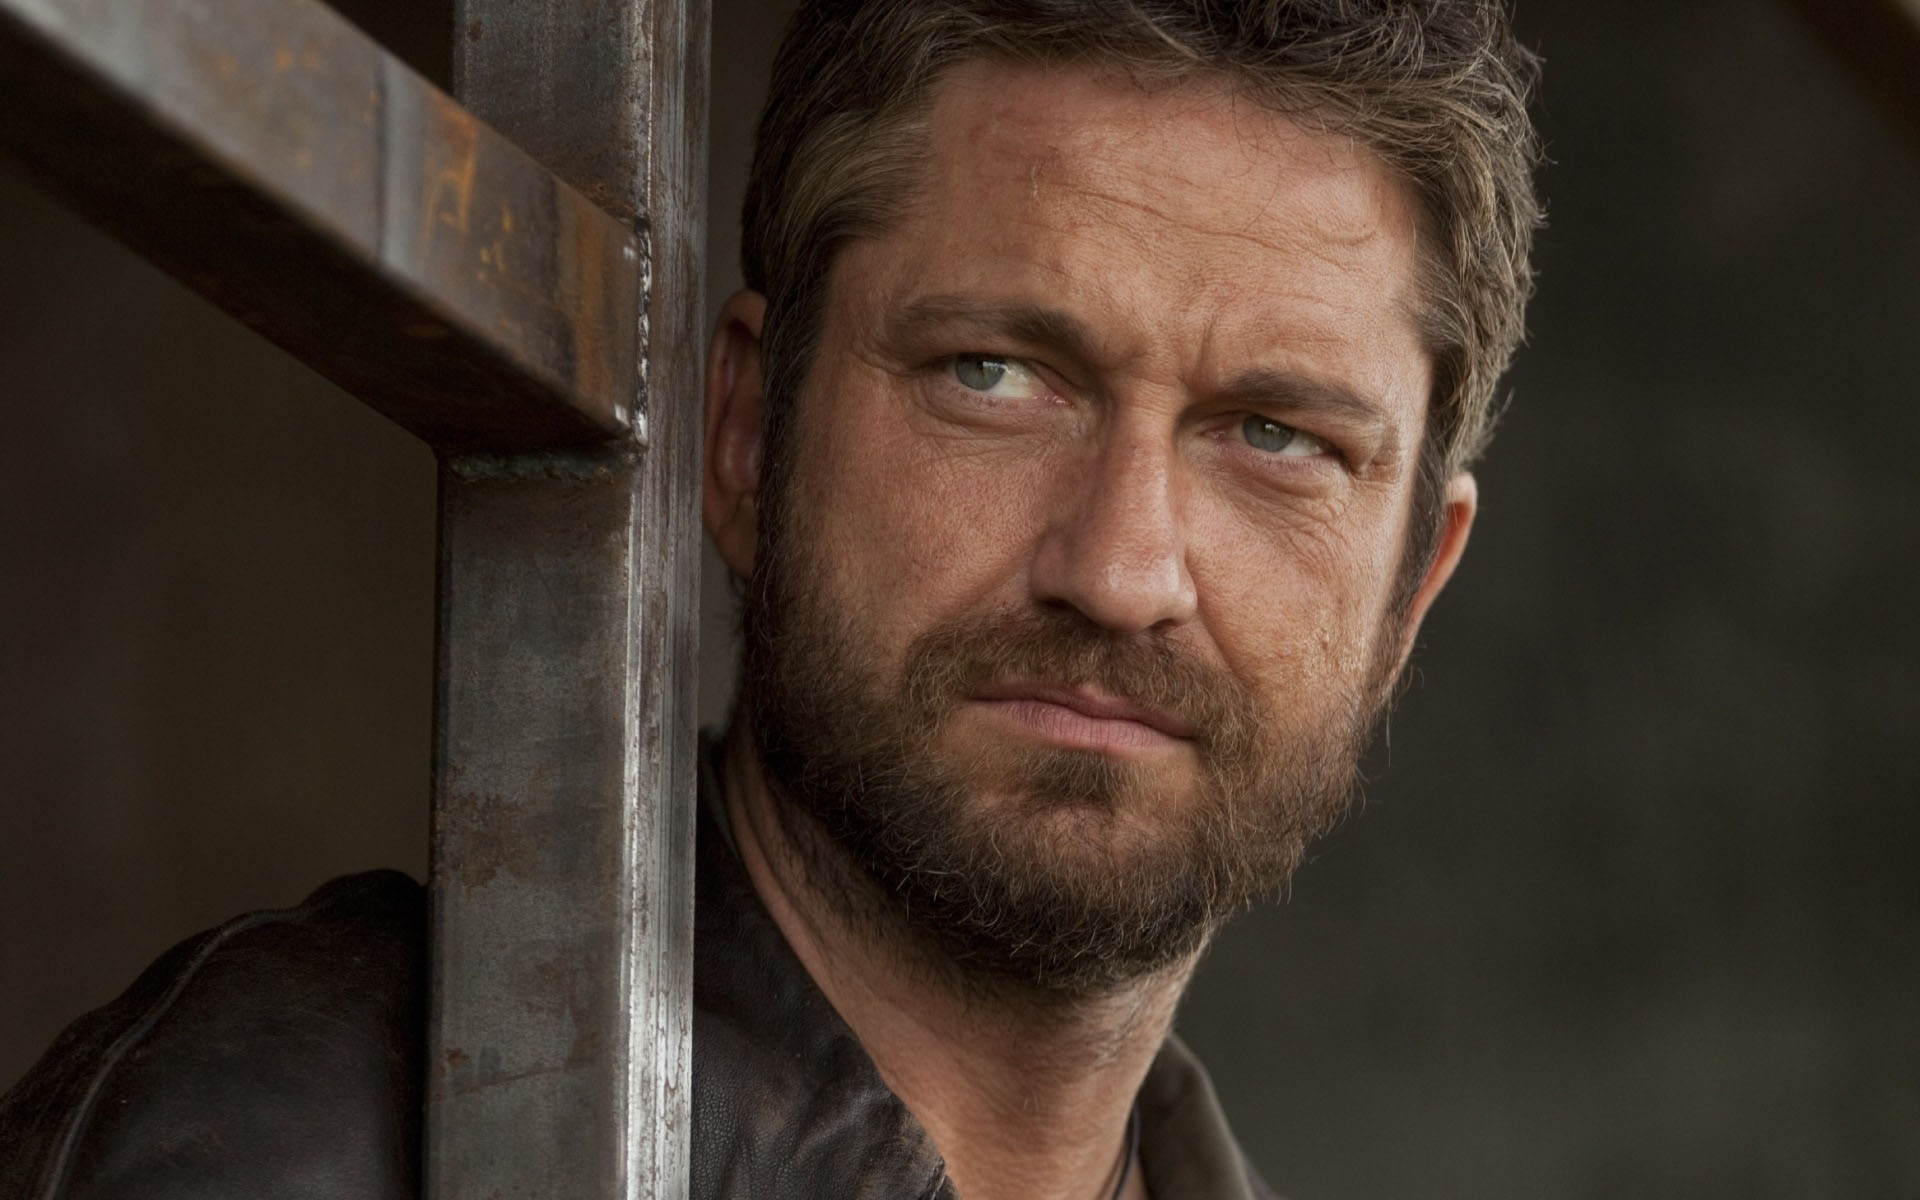 Gerard Butler Has One Of The Most Popular Movies On Streaming